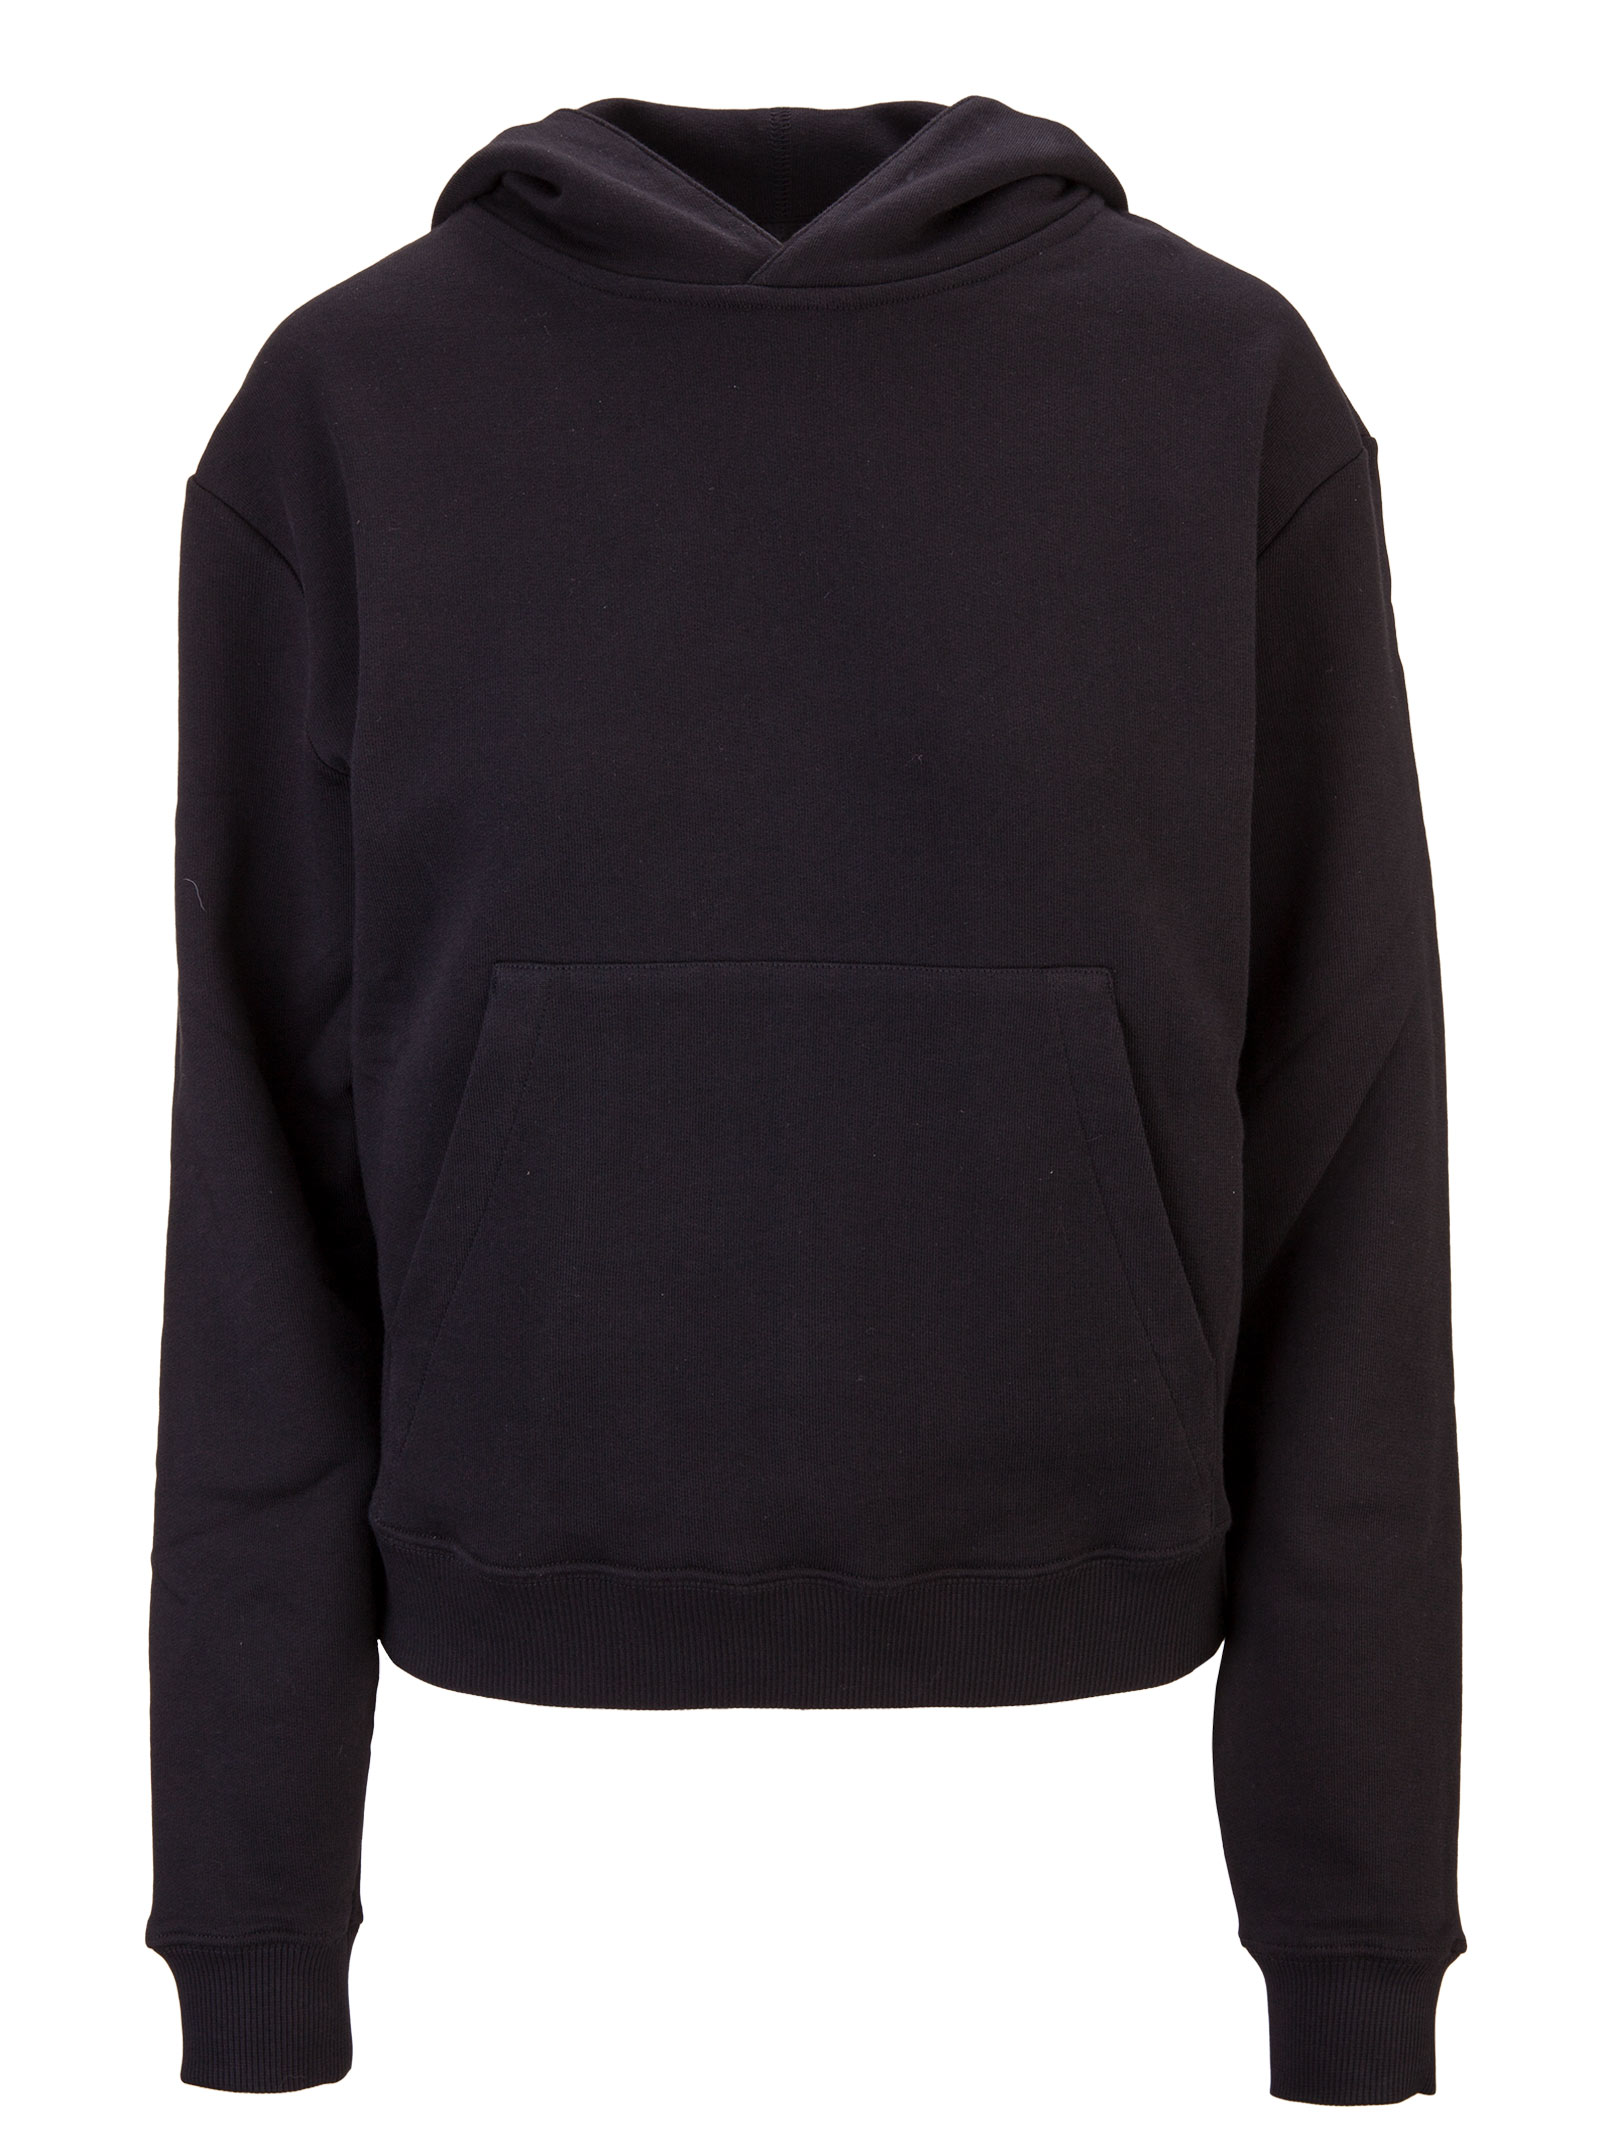 Saint Laurent sweatshirt